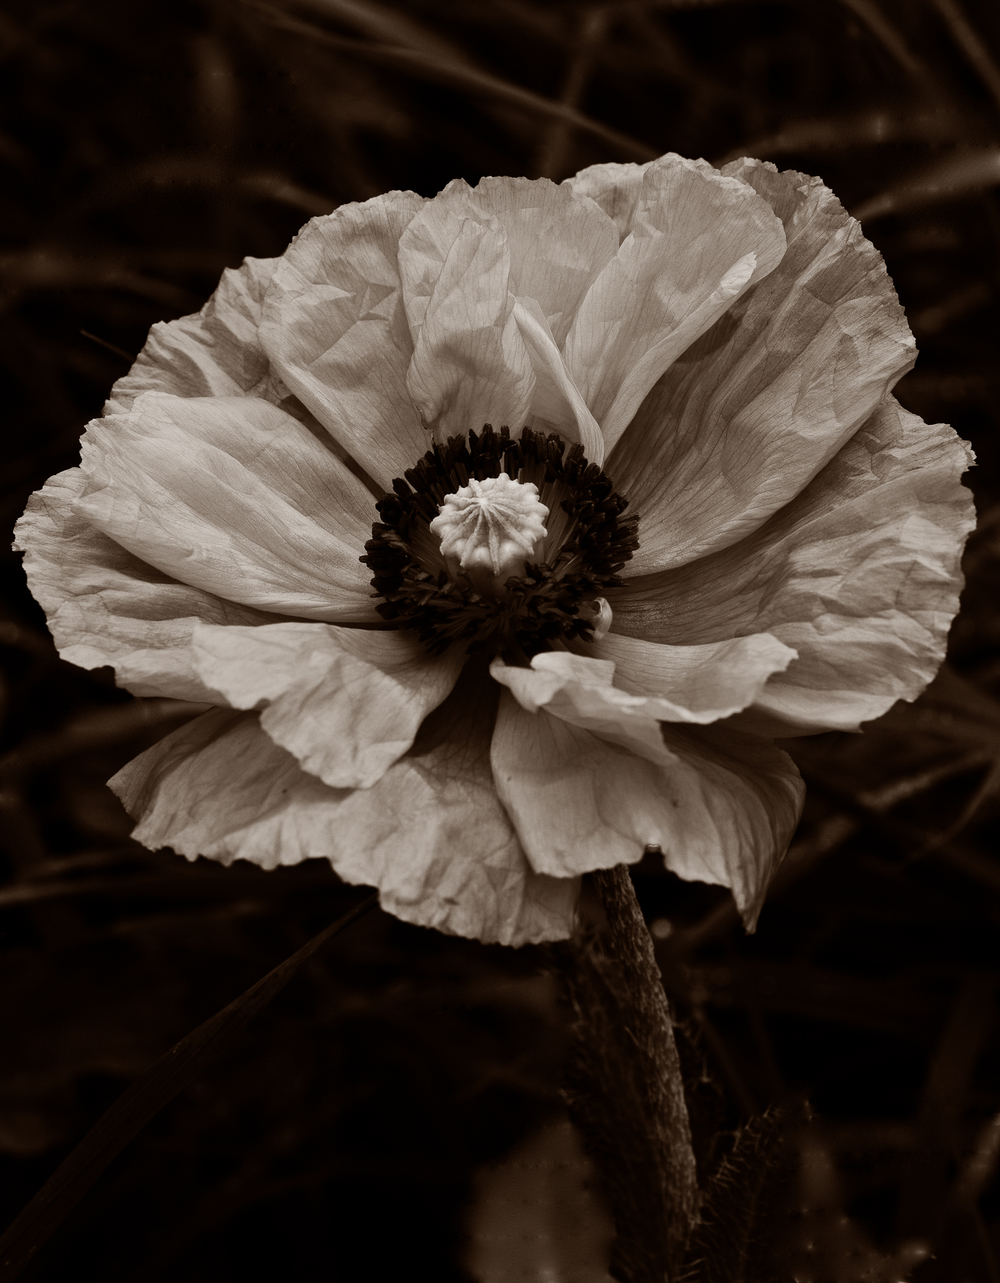 Poppy by Philip Smith